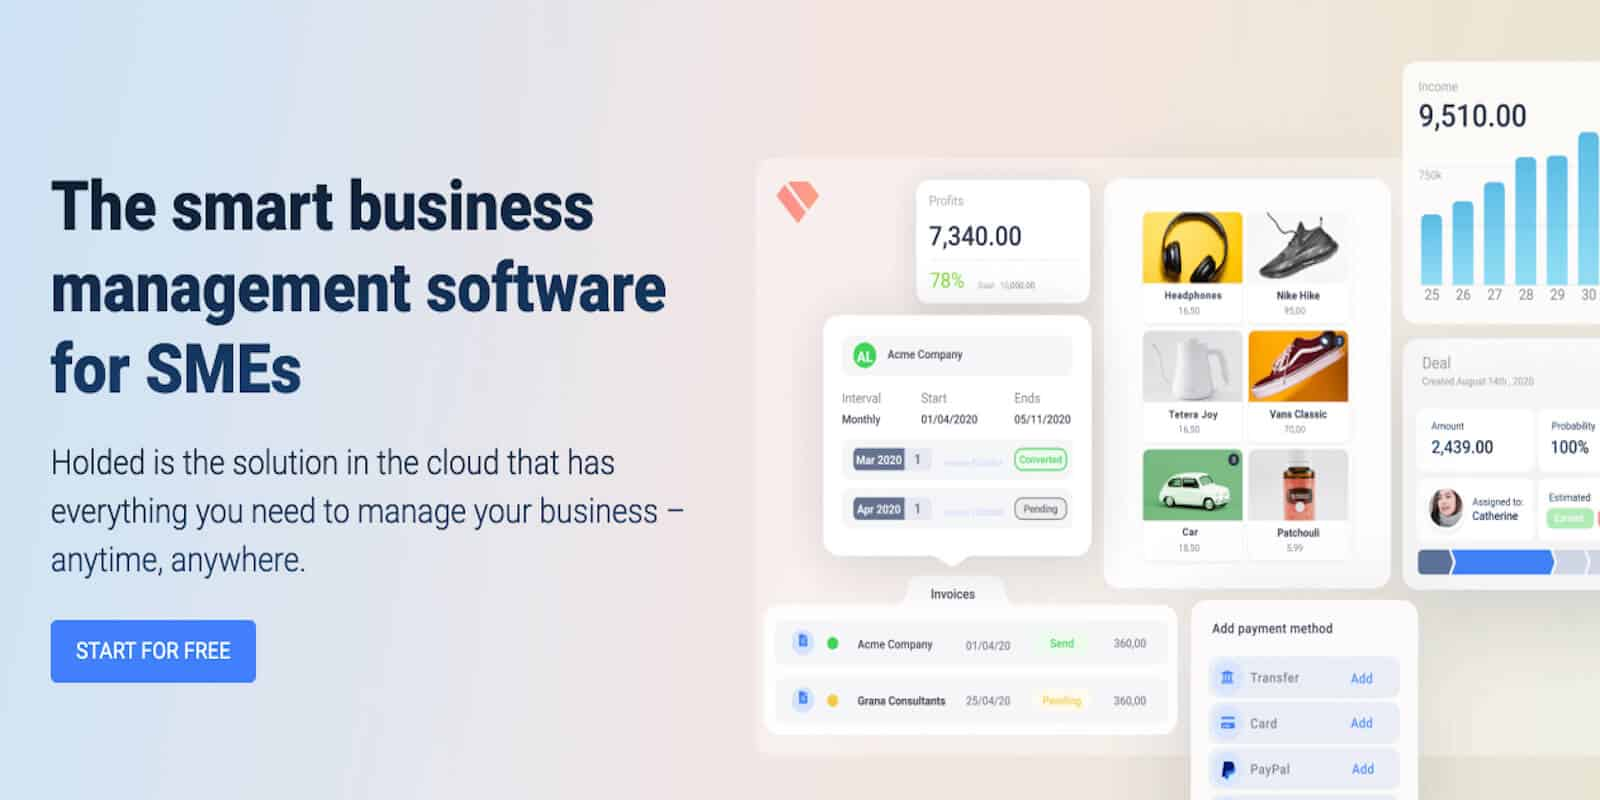 Holded offers a comprehensive kit of business management software for an affordable monthly fee